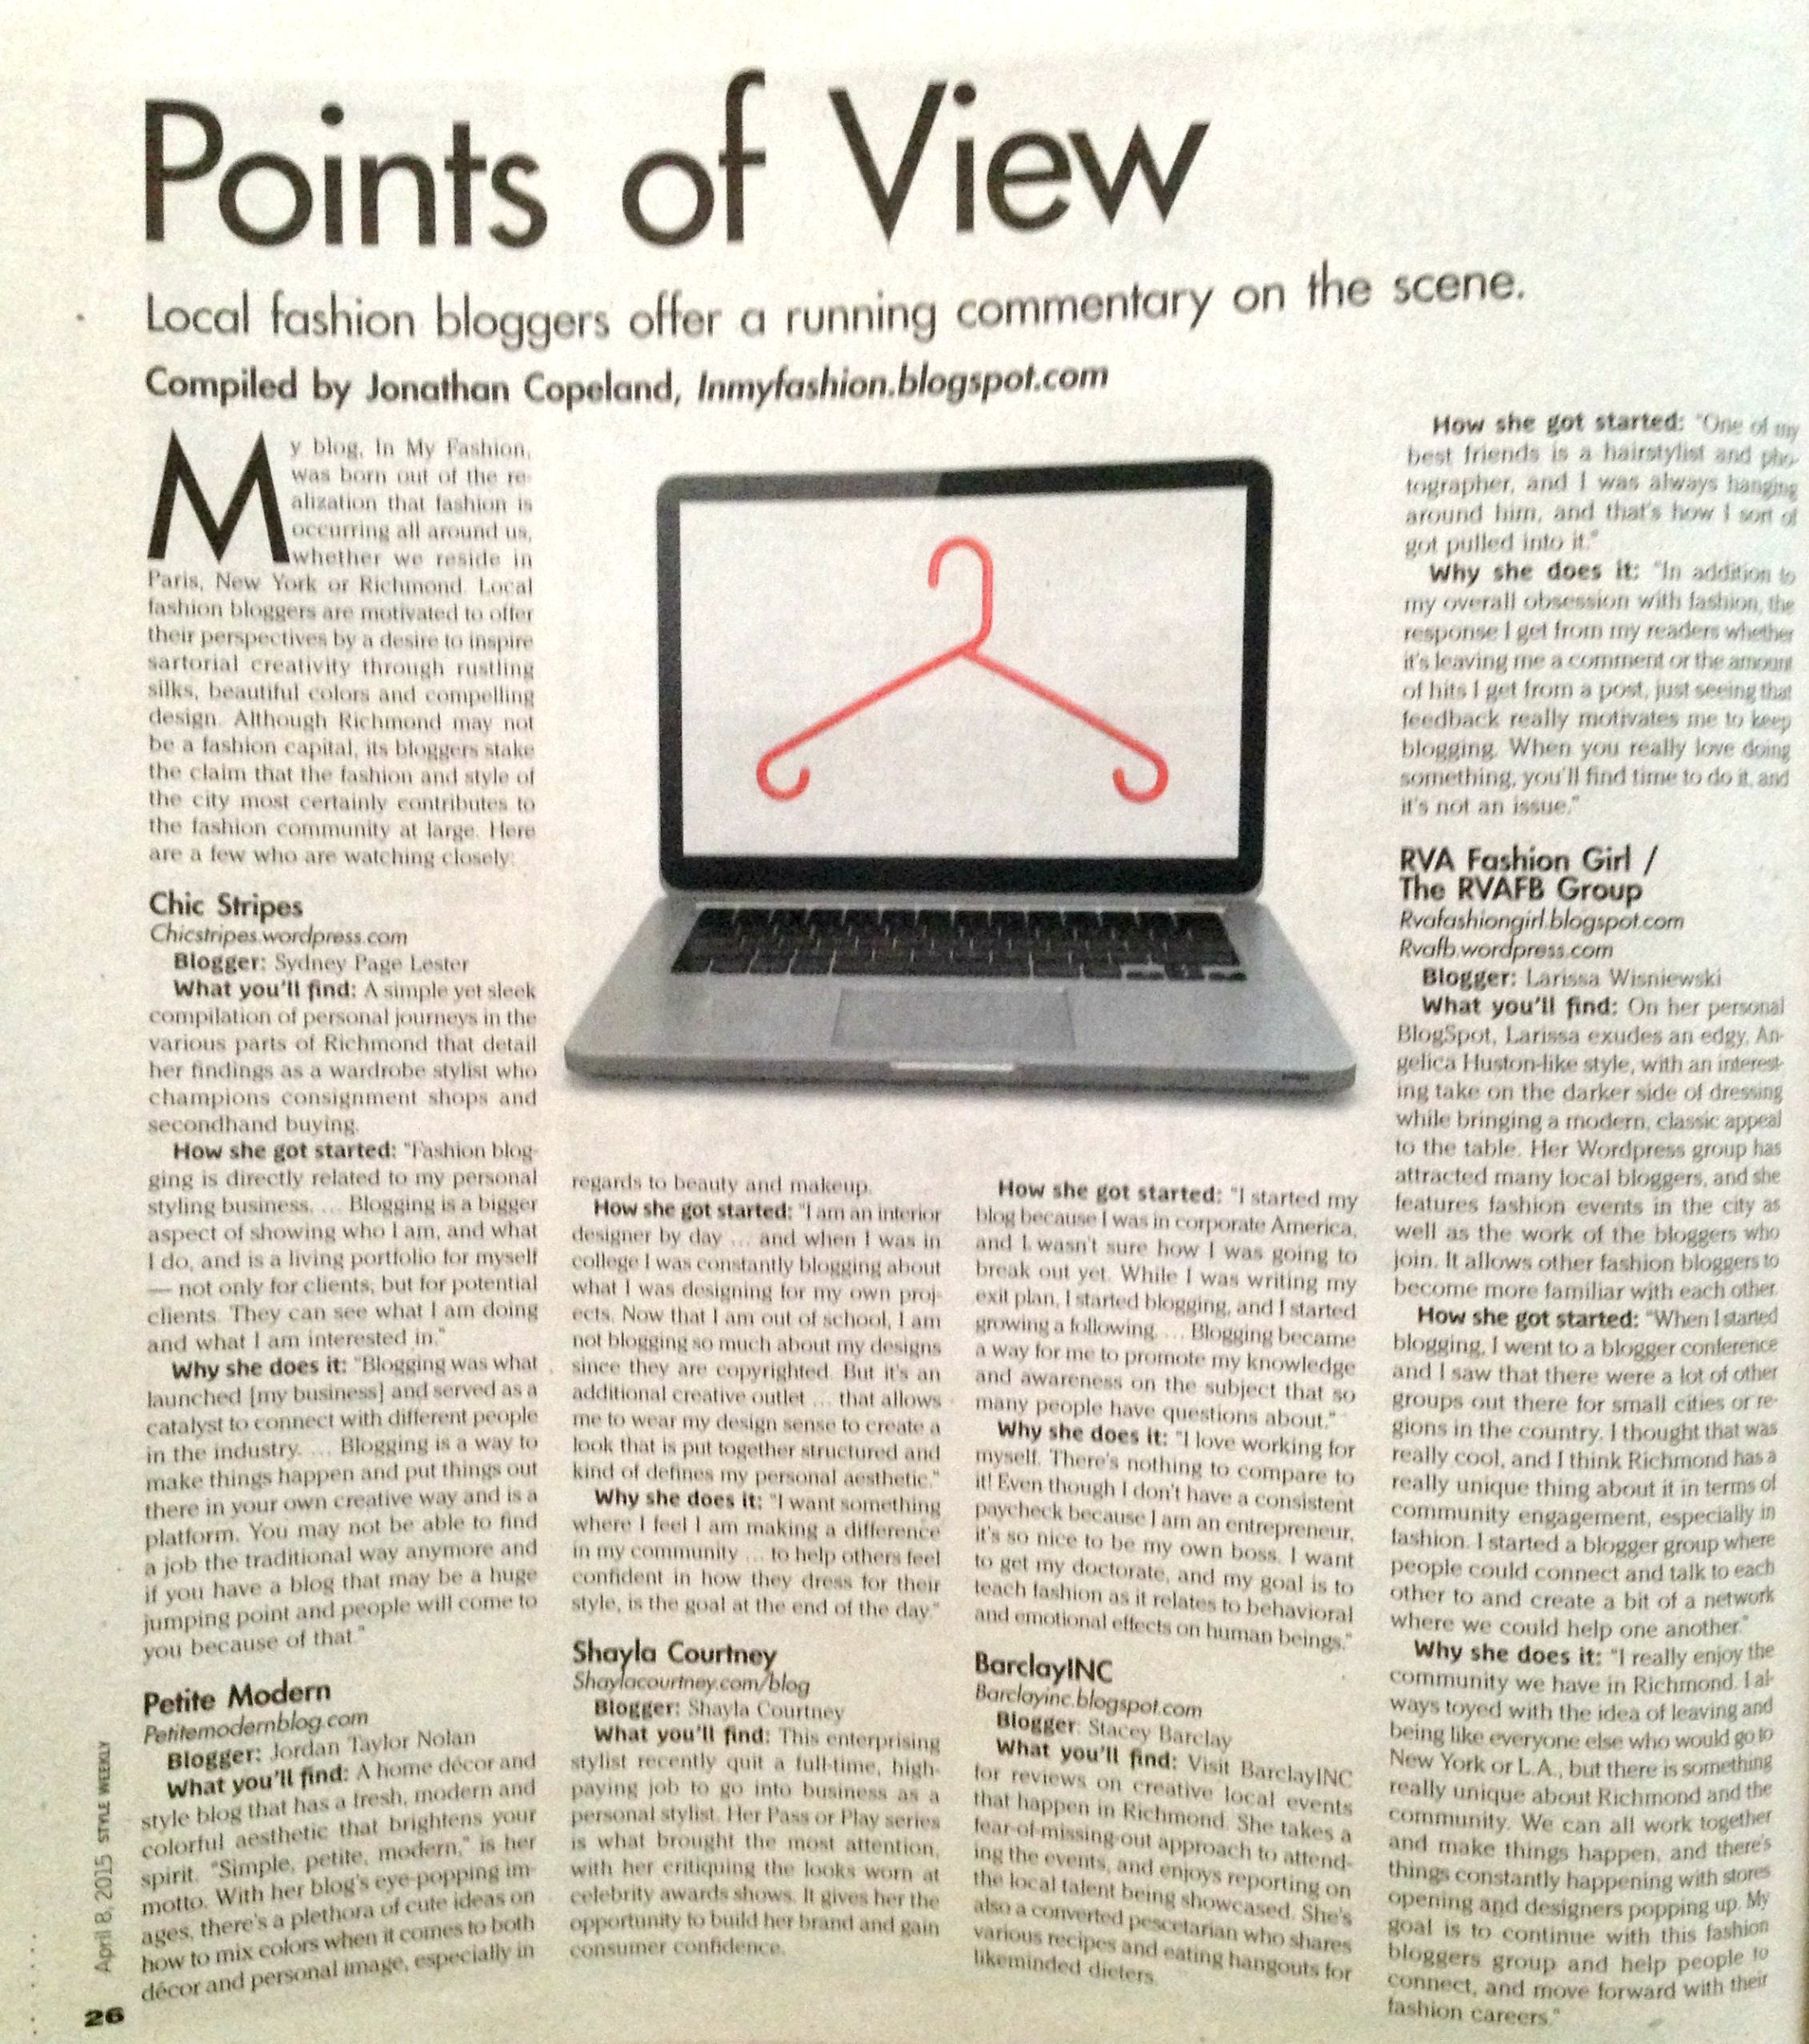 Points of View, Local fashion bloggers offer a running commentary on the Richmond scene, Style Weekly